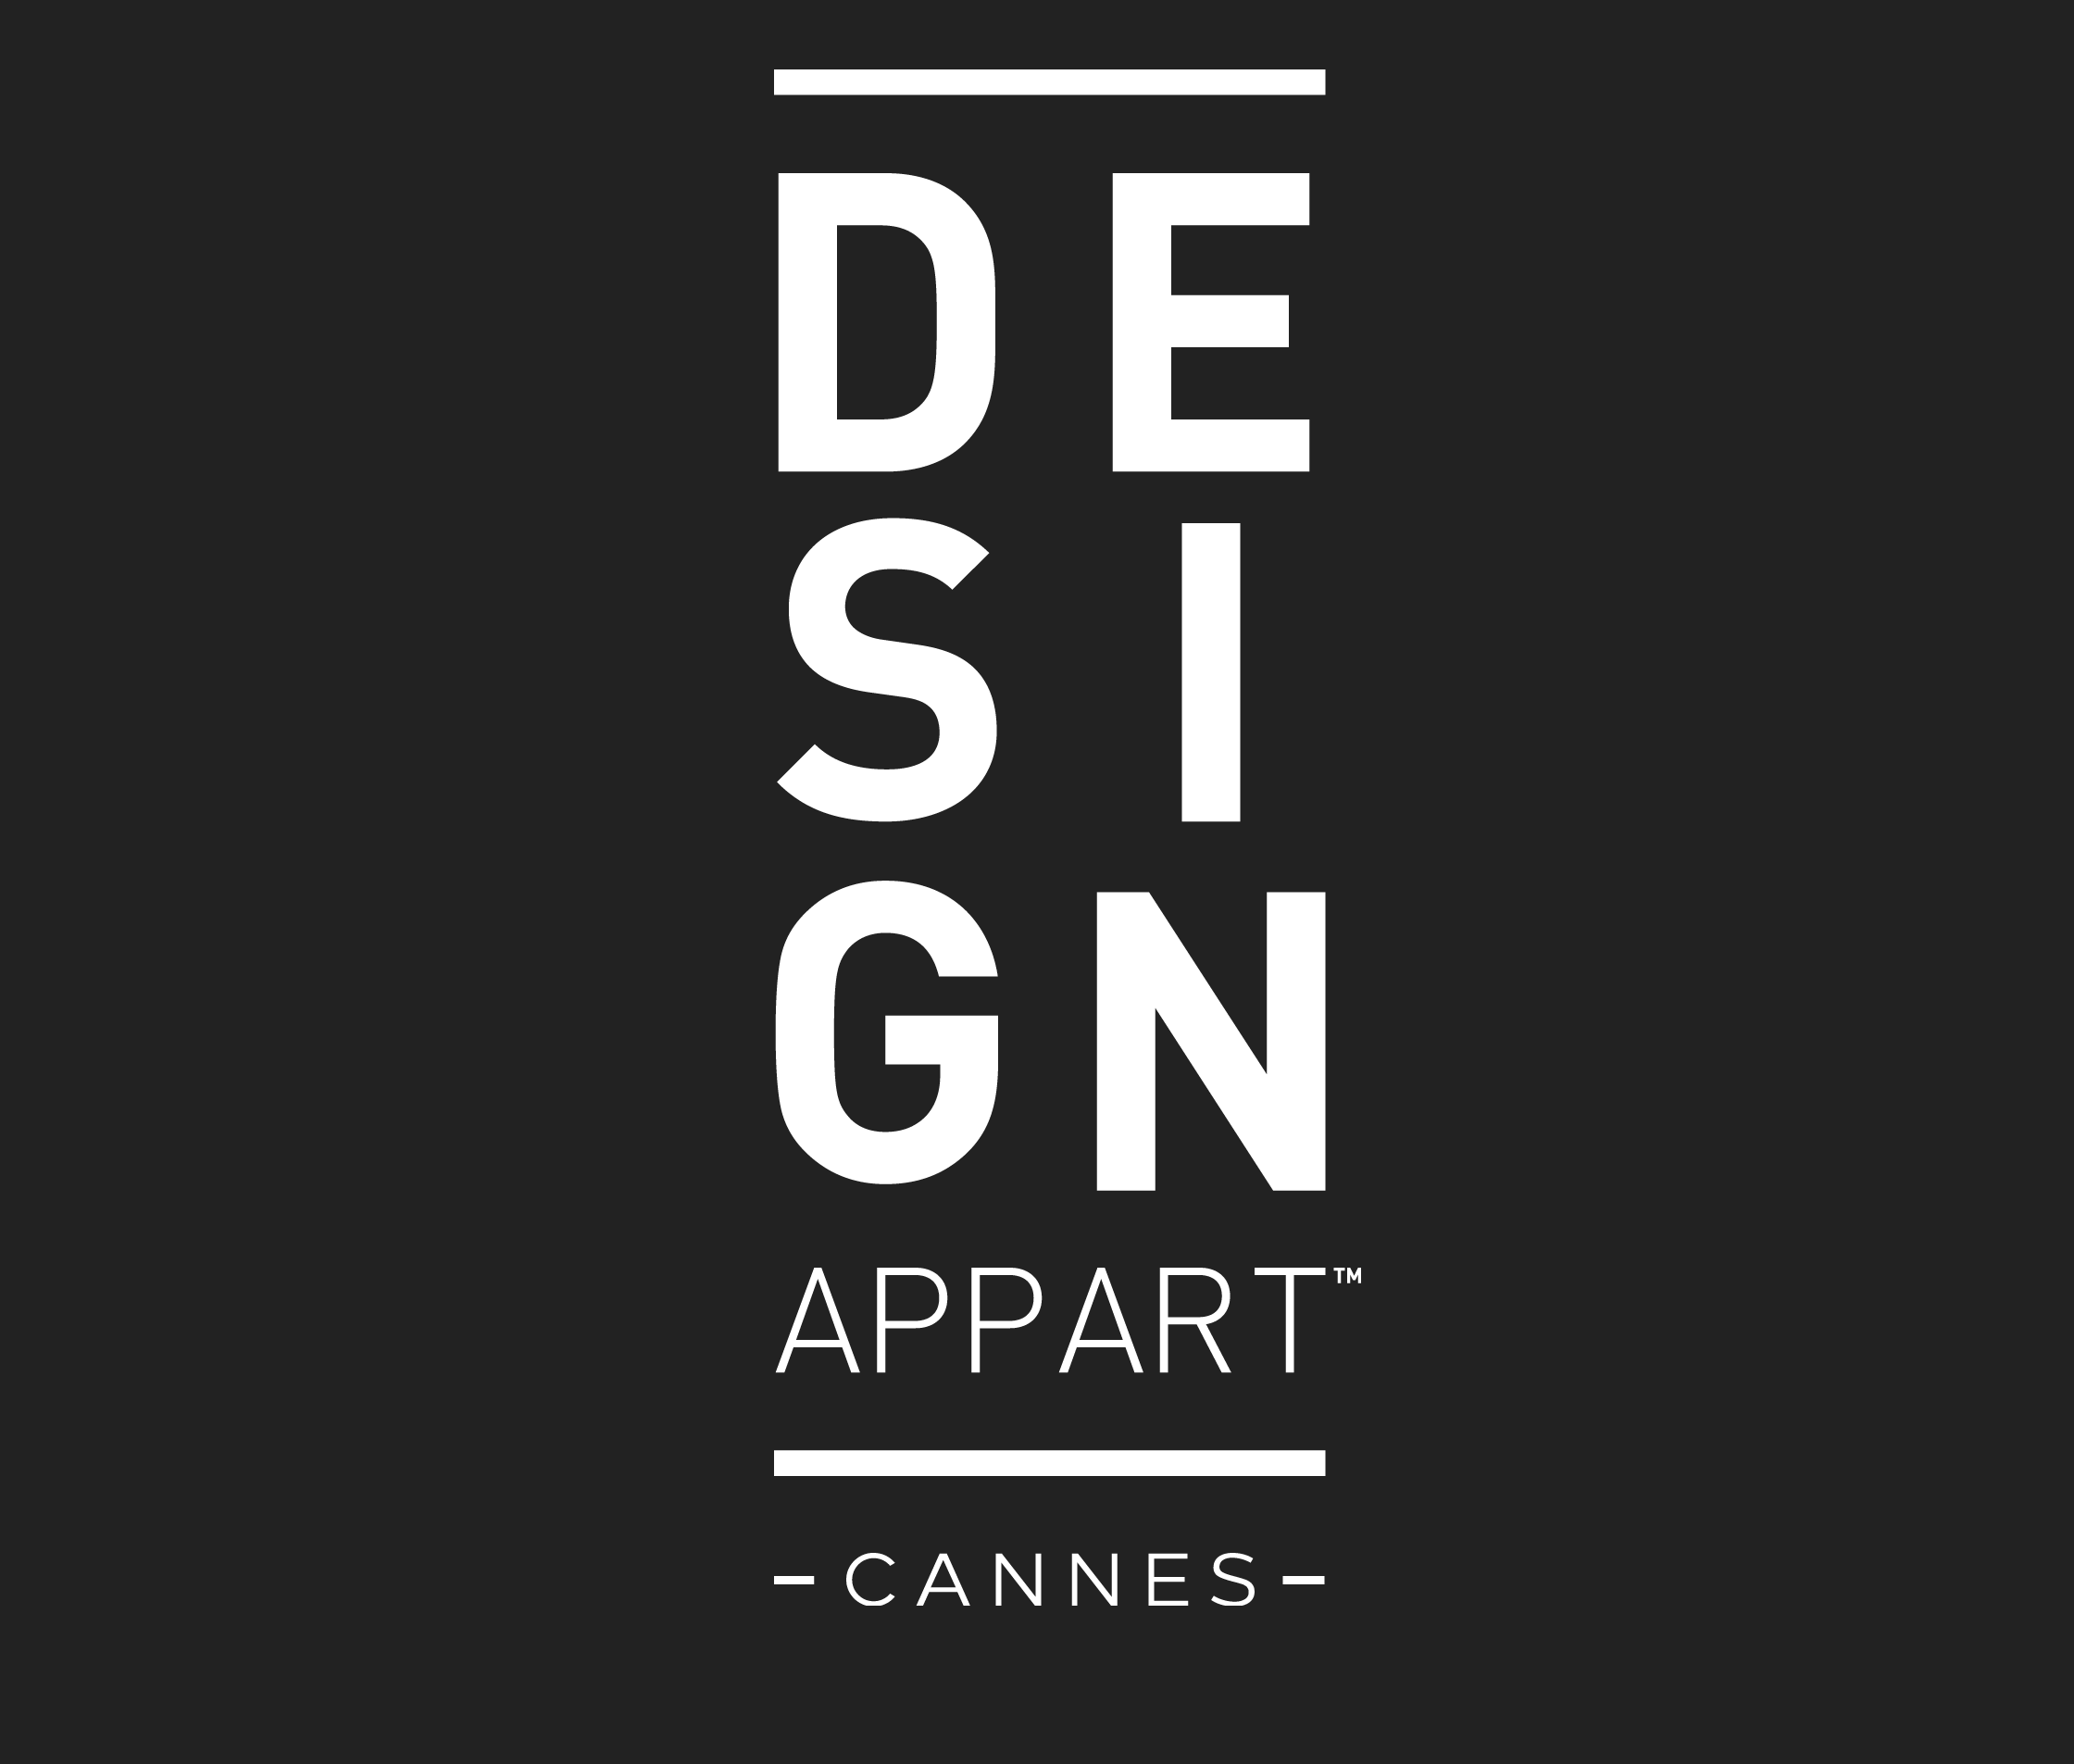 desing-appart-hotel-cannes-appartement-logo-footer